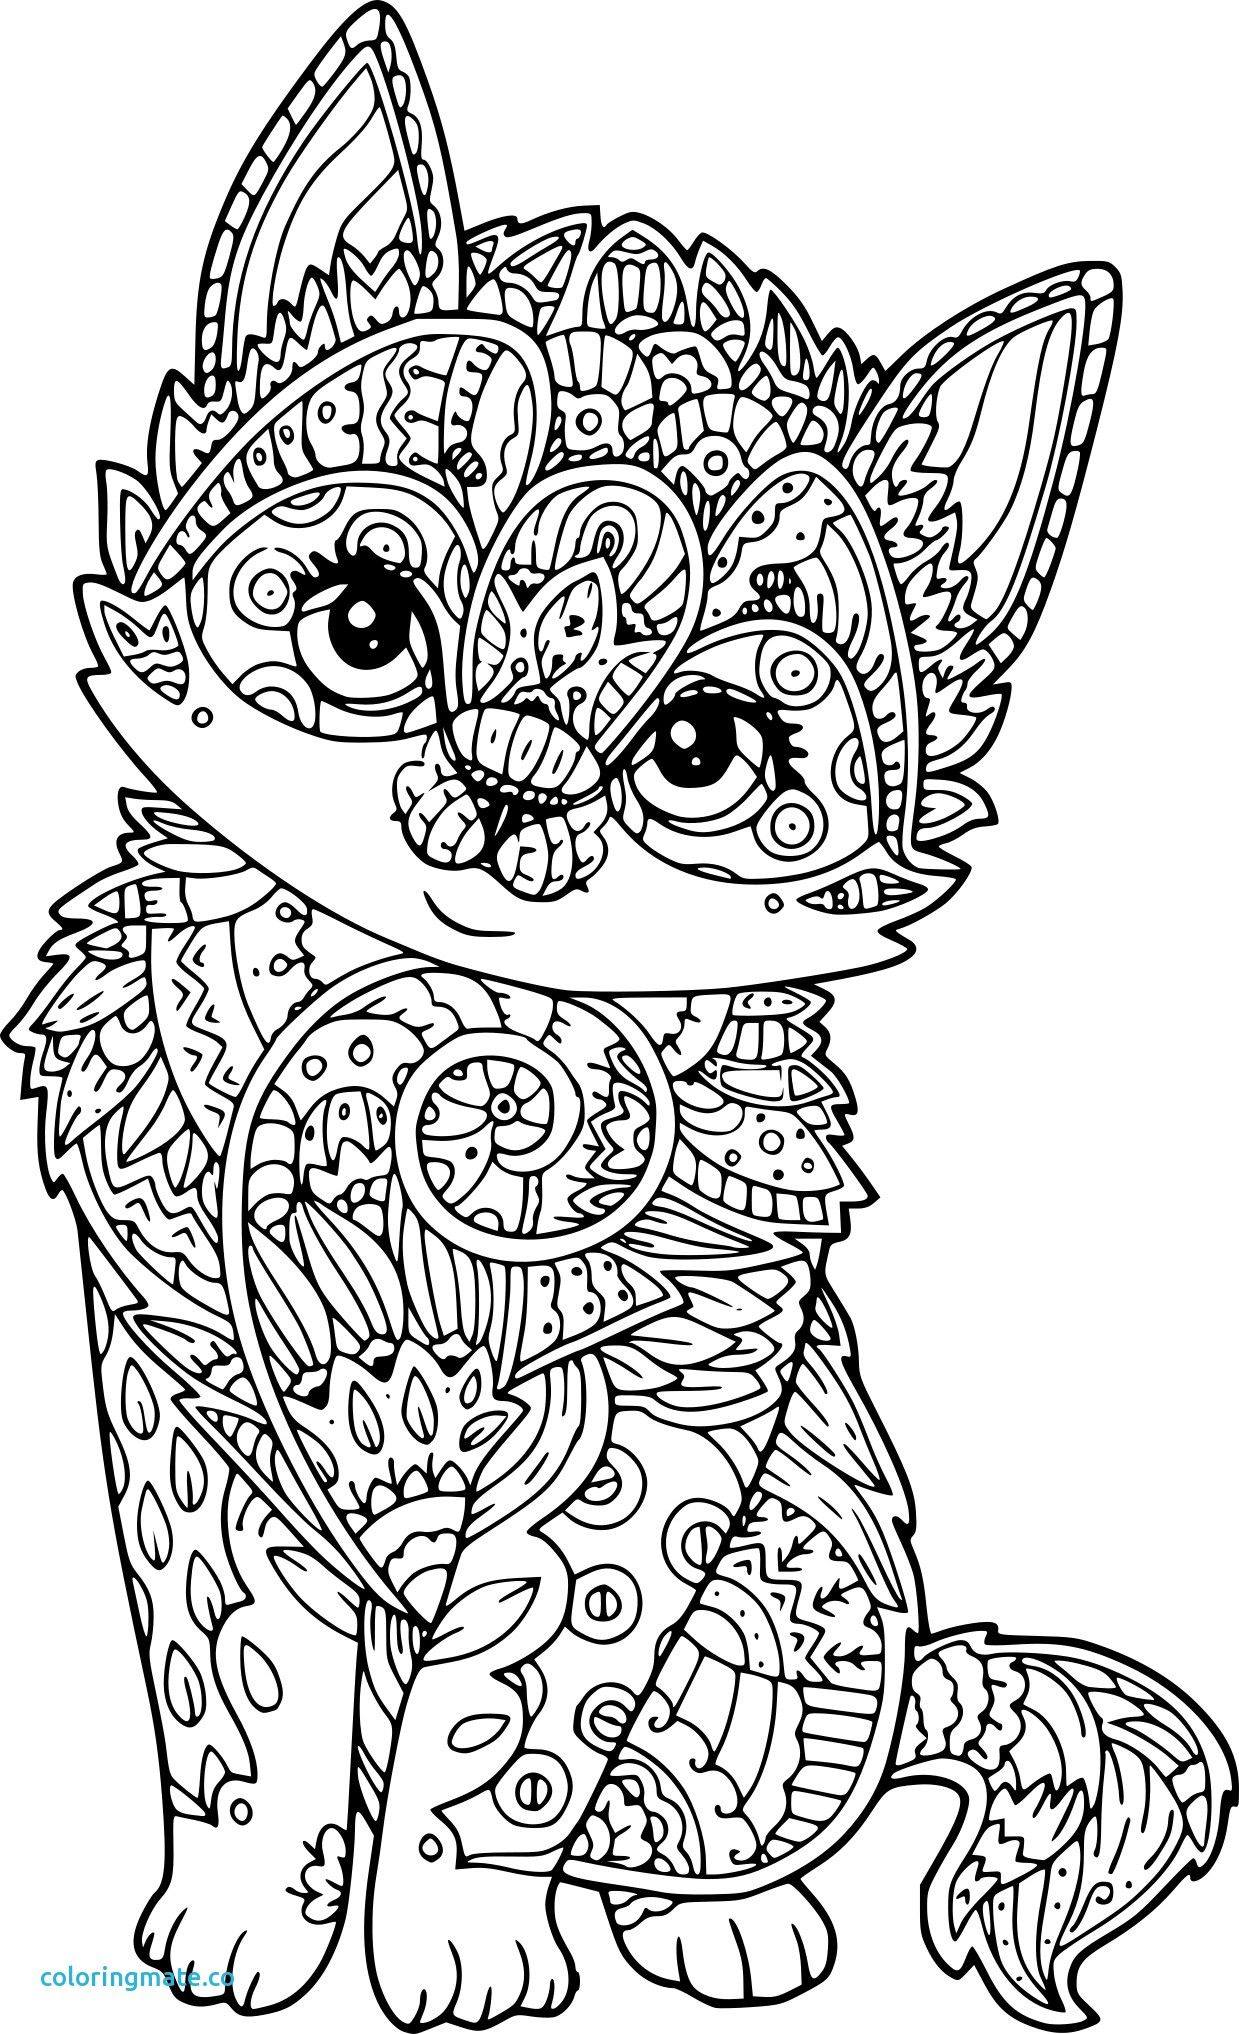 Coloriage mandala chat papillon fresh coloriage chat antistress a imprimer sur coloriages info - Coloriage anti stress gratuit ...